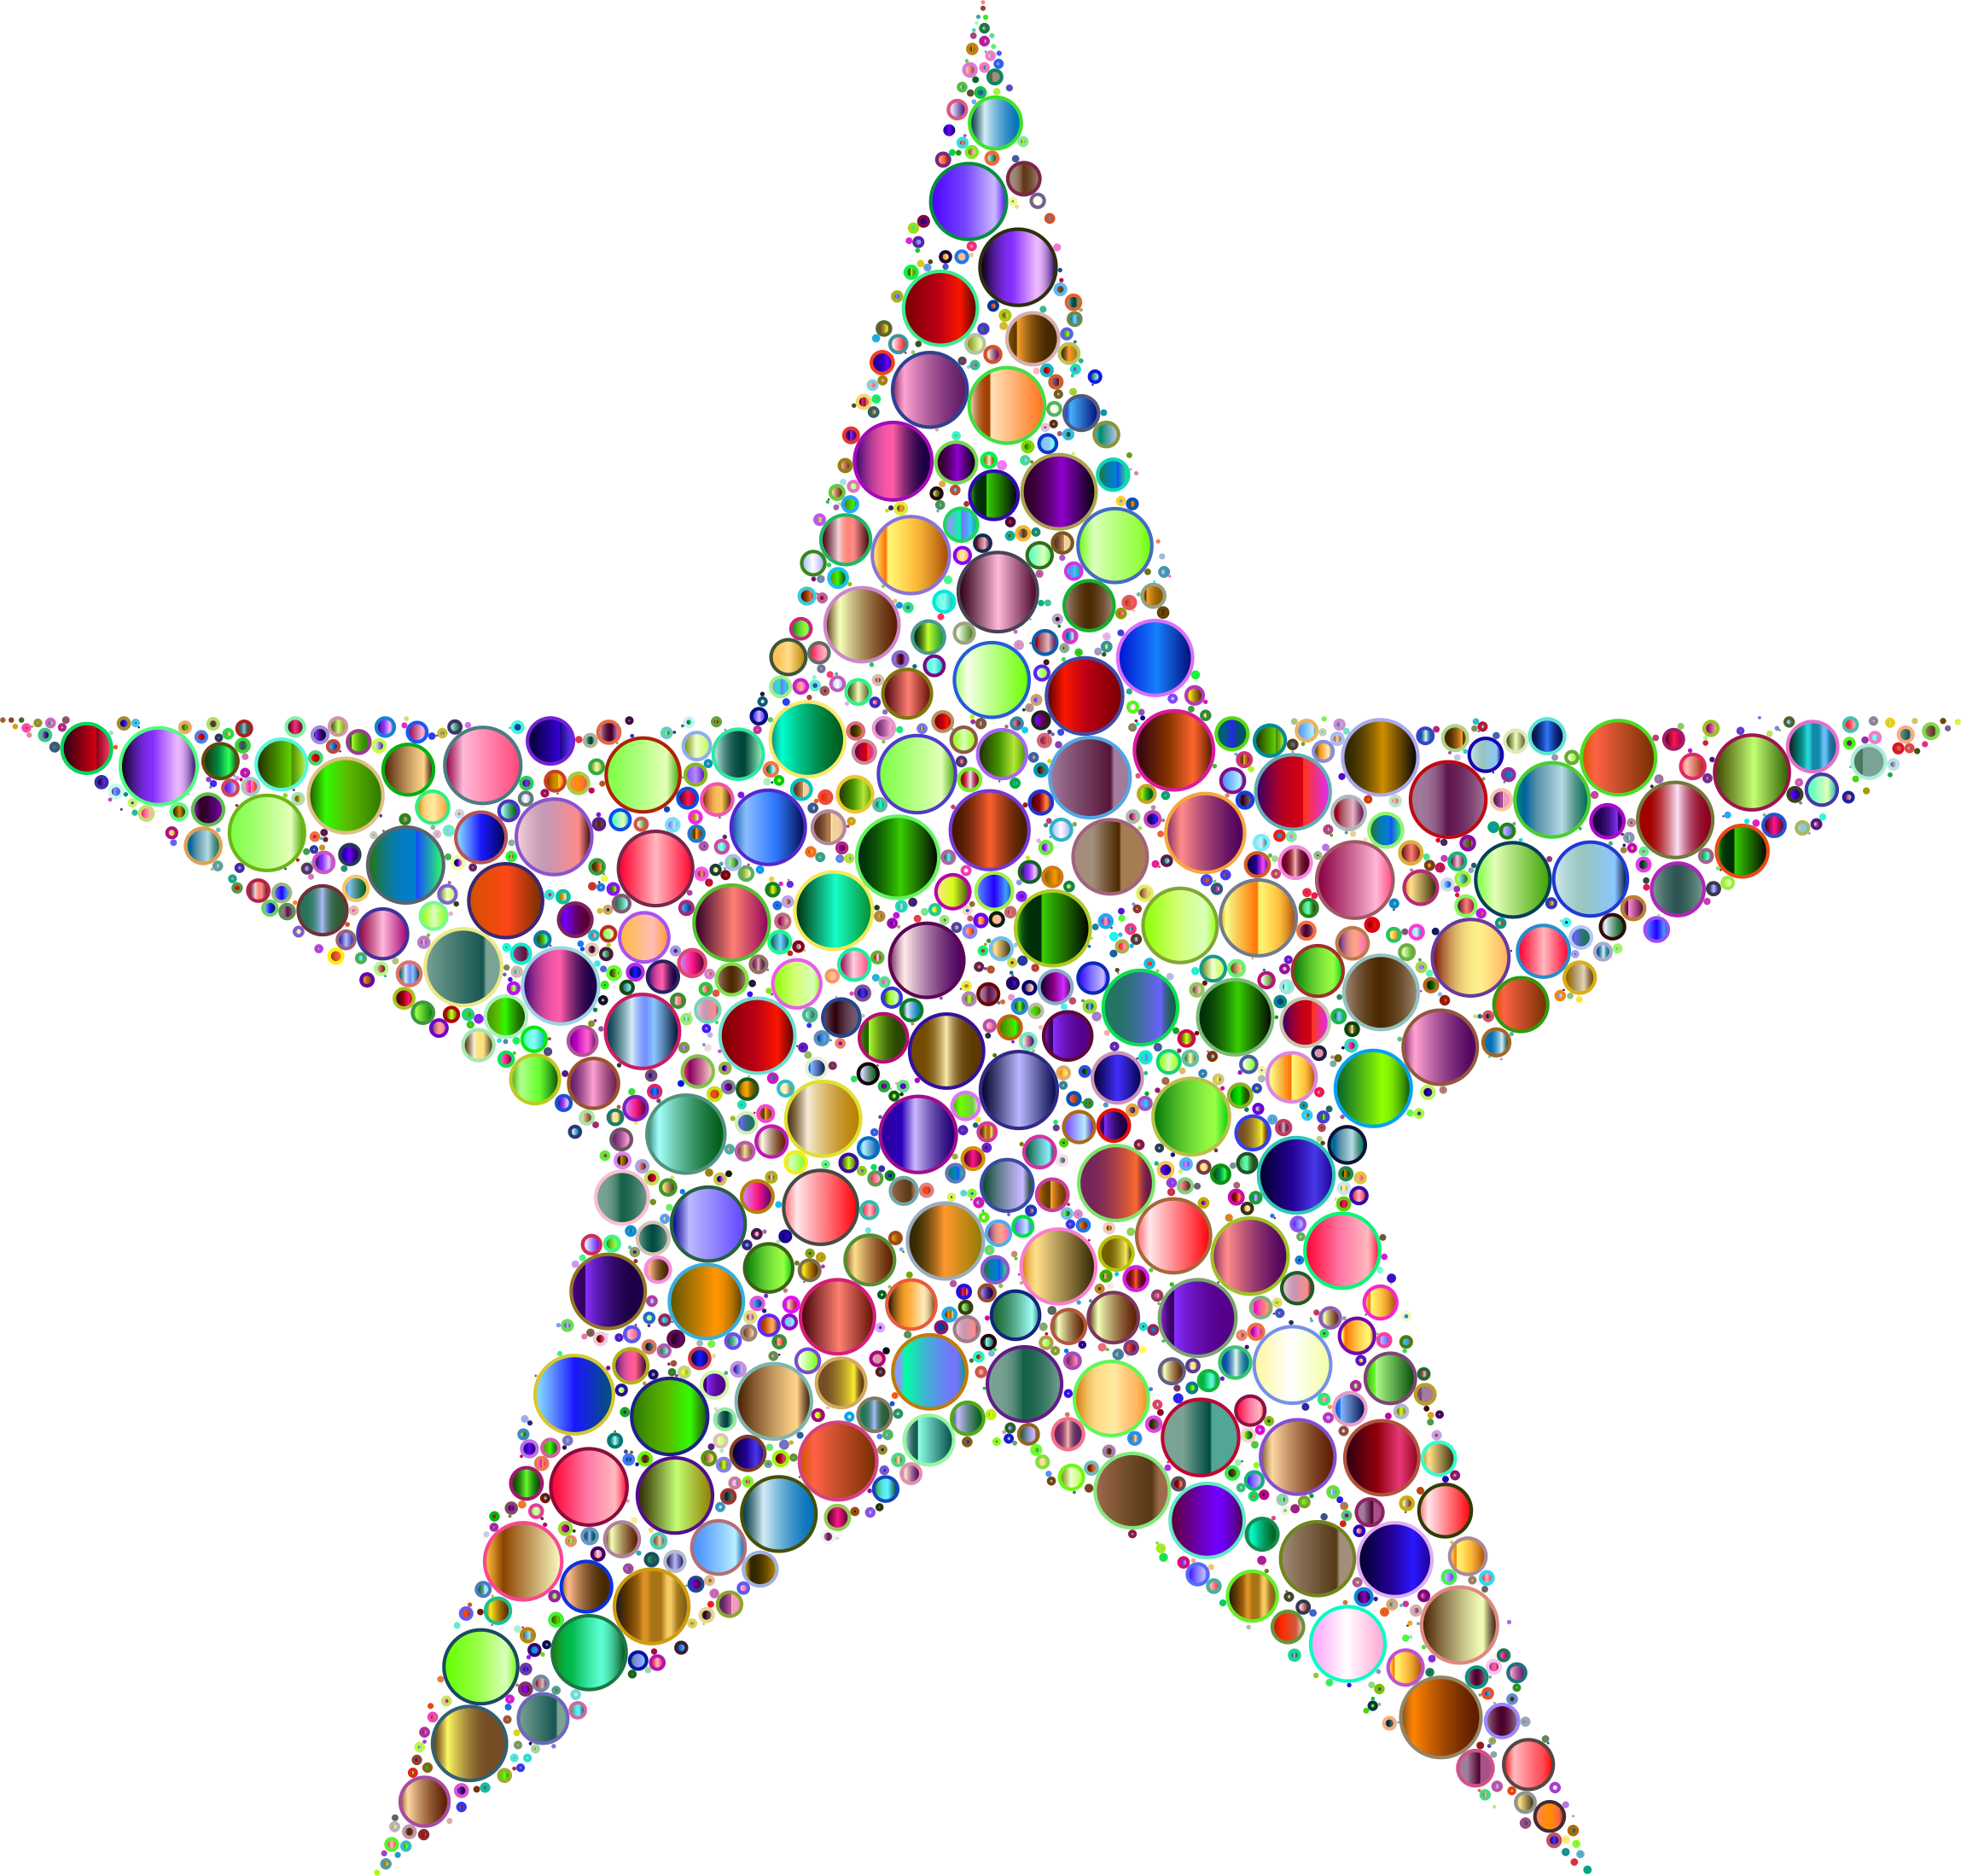 Colorful star clipart vector free download Colorful Circles Star 8 No Background Icons PNG - Free PNG and Icons ... vector free download